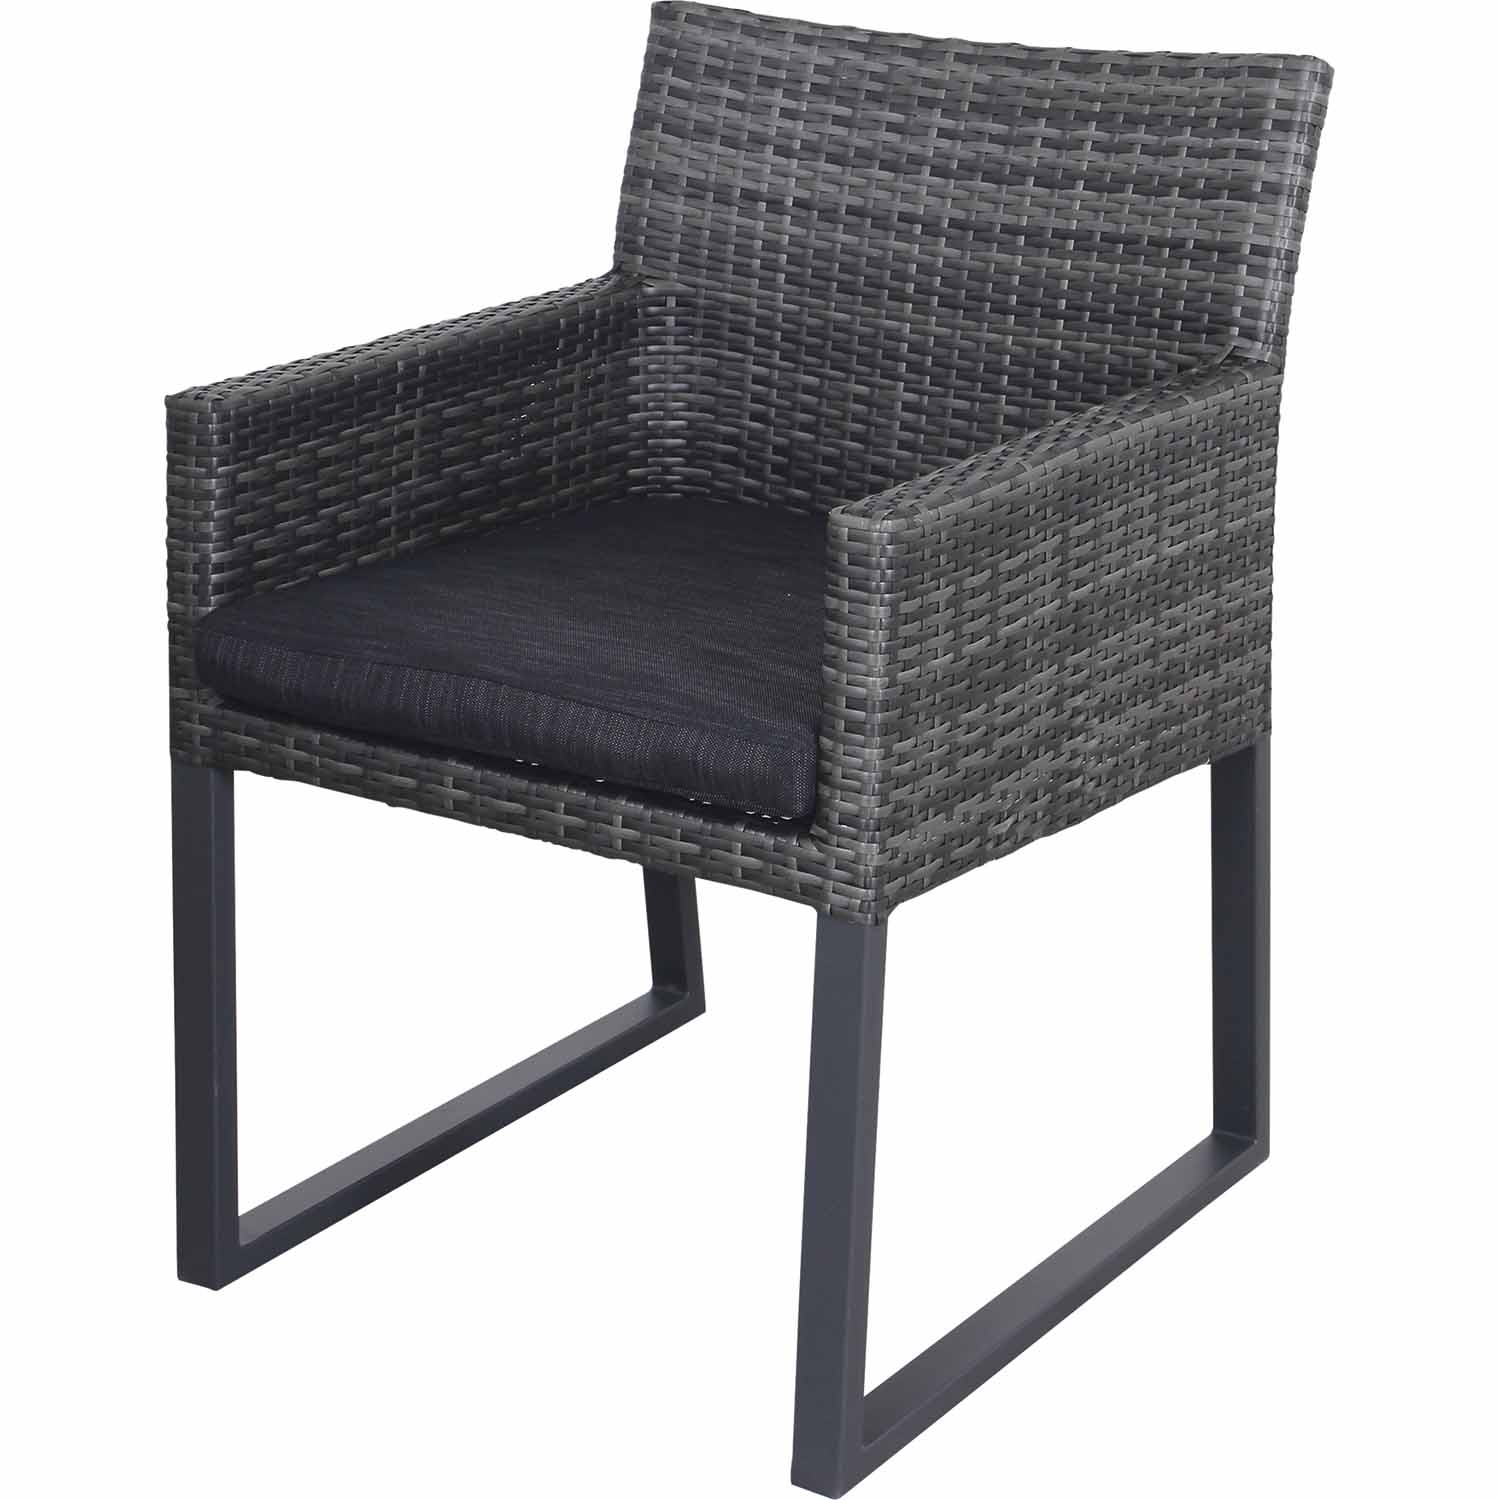 hanging chair mitre 10 comfy room chairs nouveau dining tub outdoor hardwood